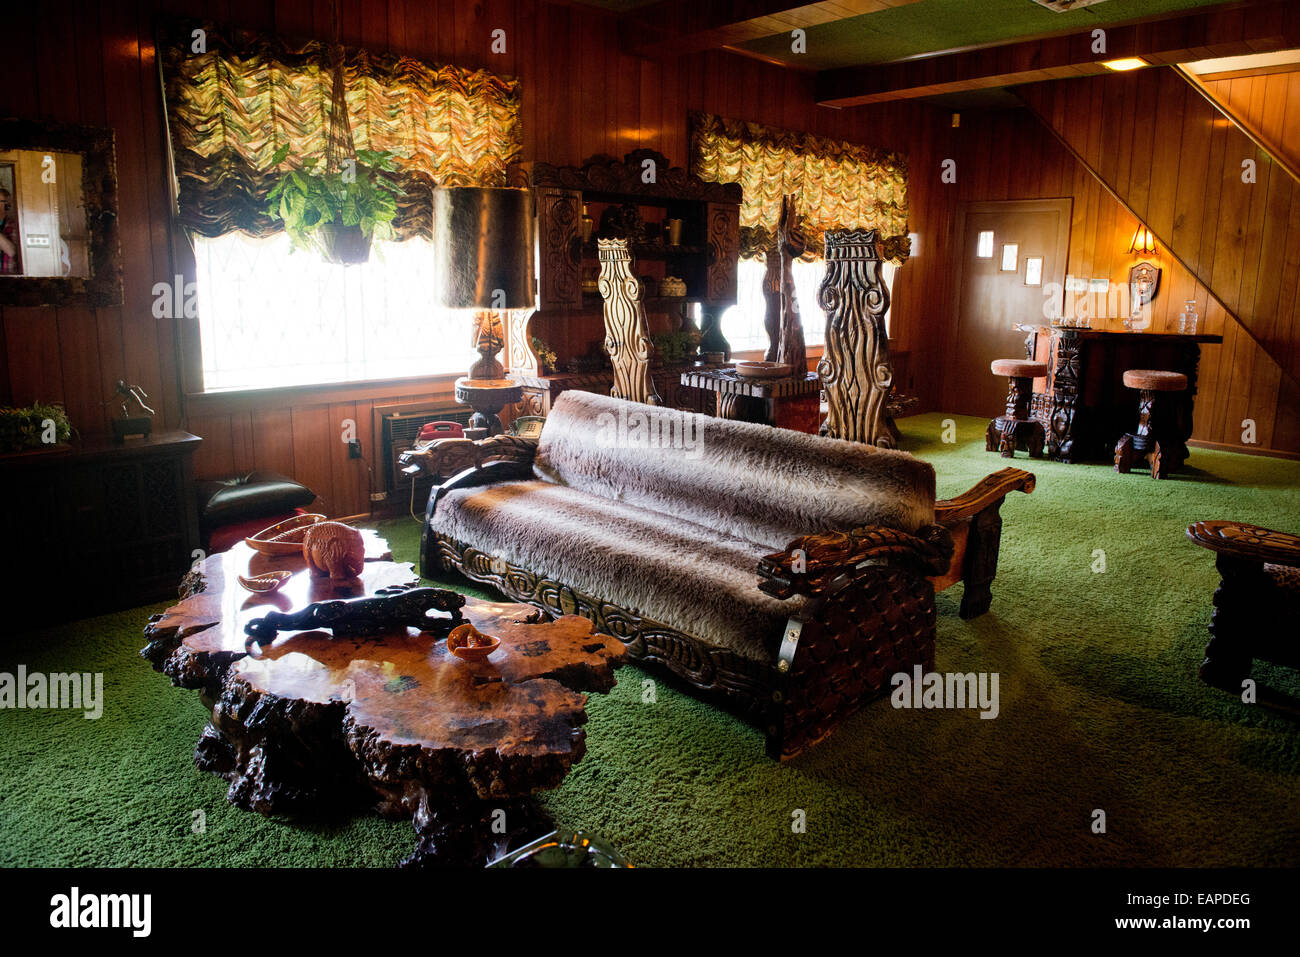 The Jungle Room. Graceland, Memphis Tennessee - Stock Image